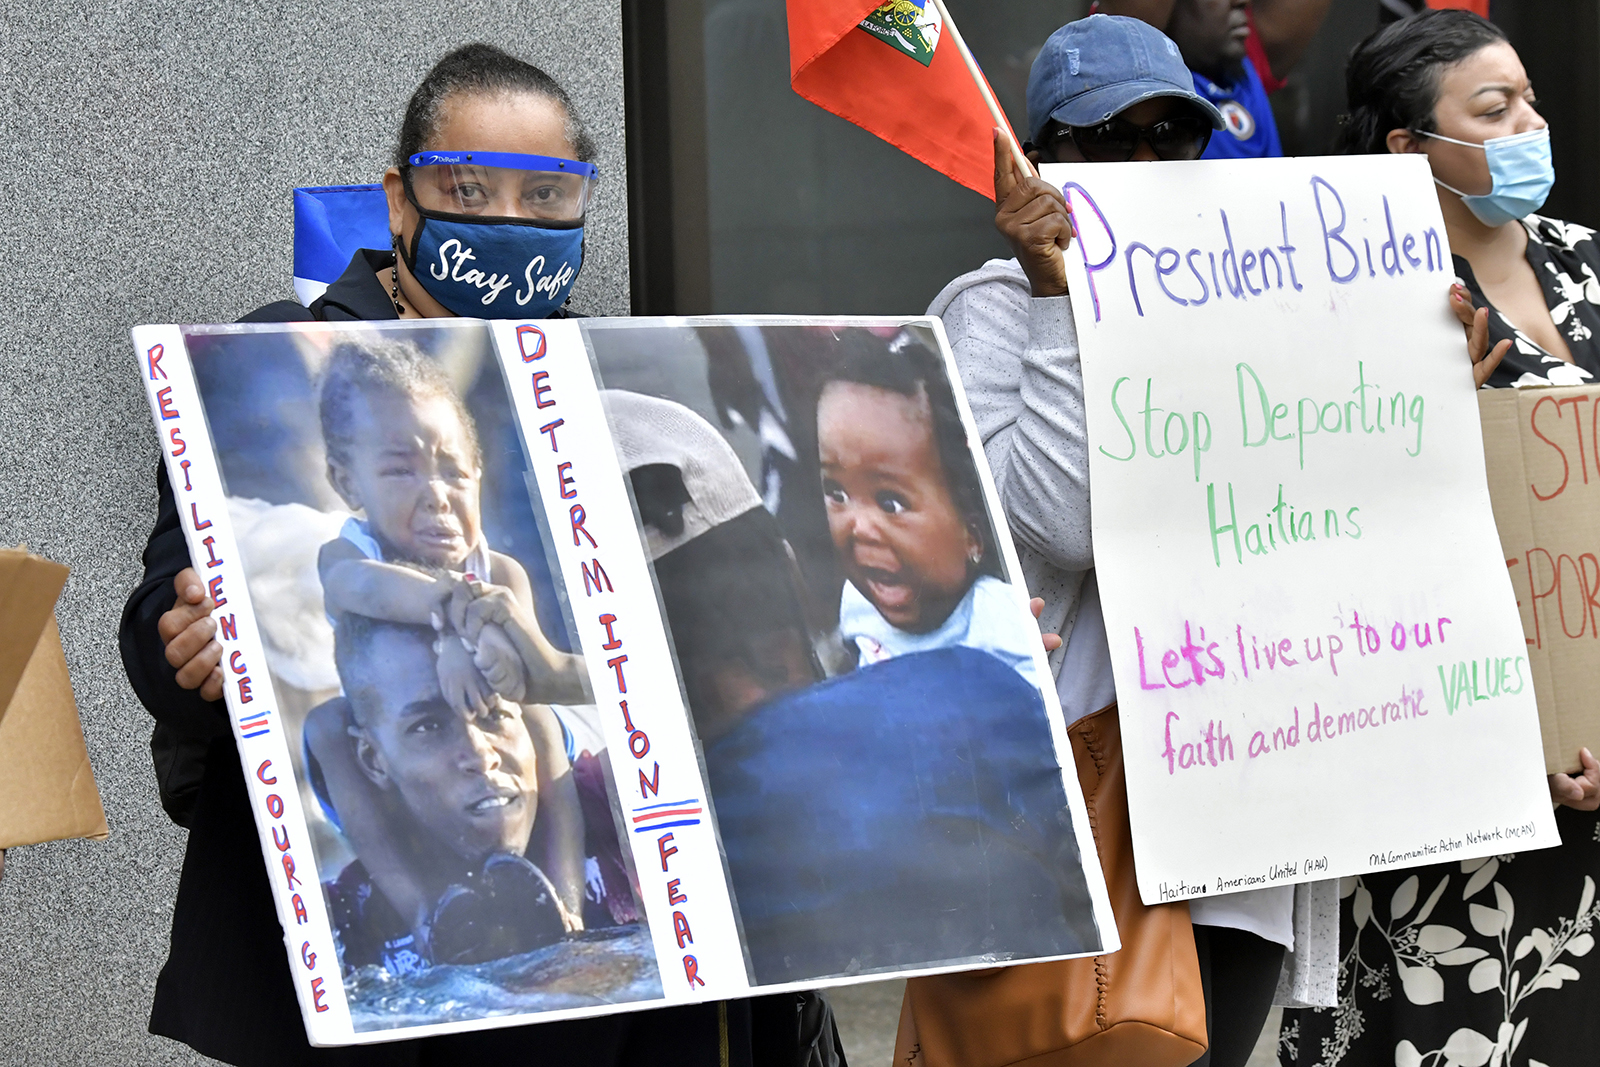 Haitian-Americans, including Clare Raymond of Boston, left, during a demonstration at the JFK Federal Building in Boston on Friday, Sept. 24, 2021. Members of Boston's sizable Haitian community staged a protest outside the Federal building to denounce the mistreatment of Haitian migrants at the border with Mexico. (AP Photo/Josh Reynolds)